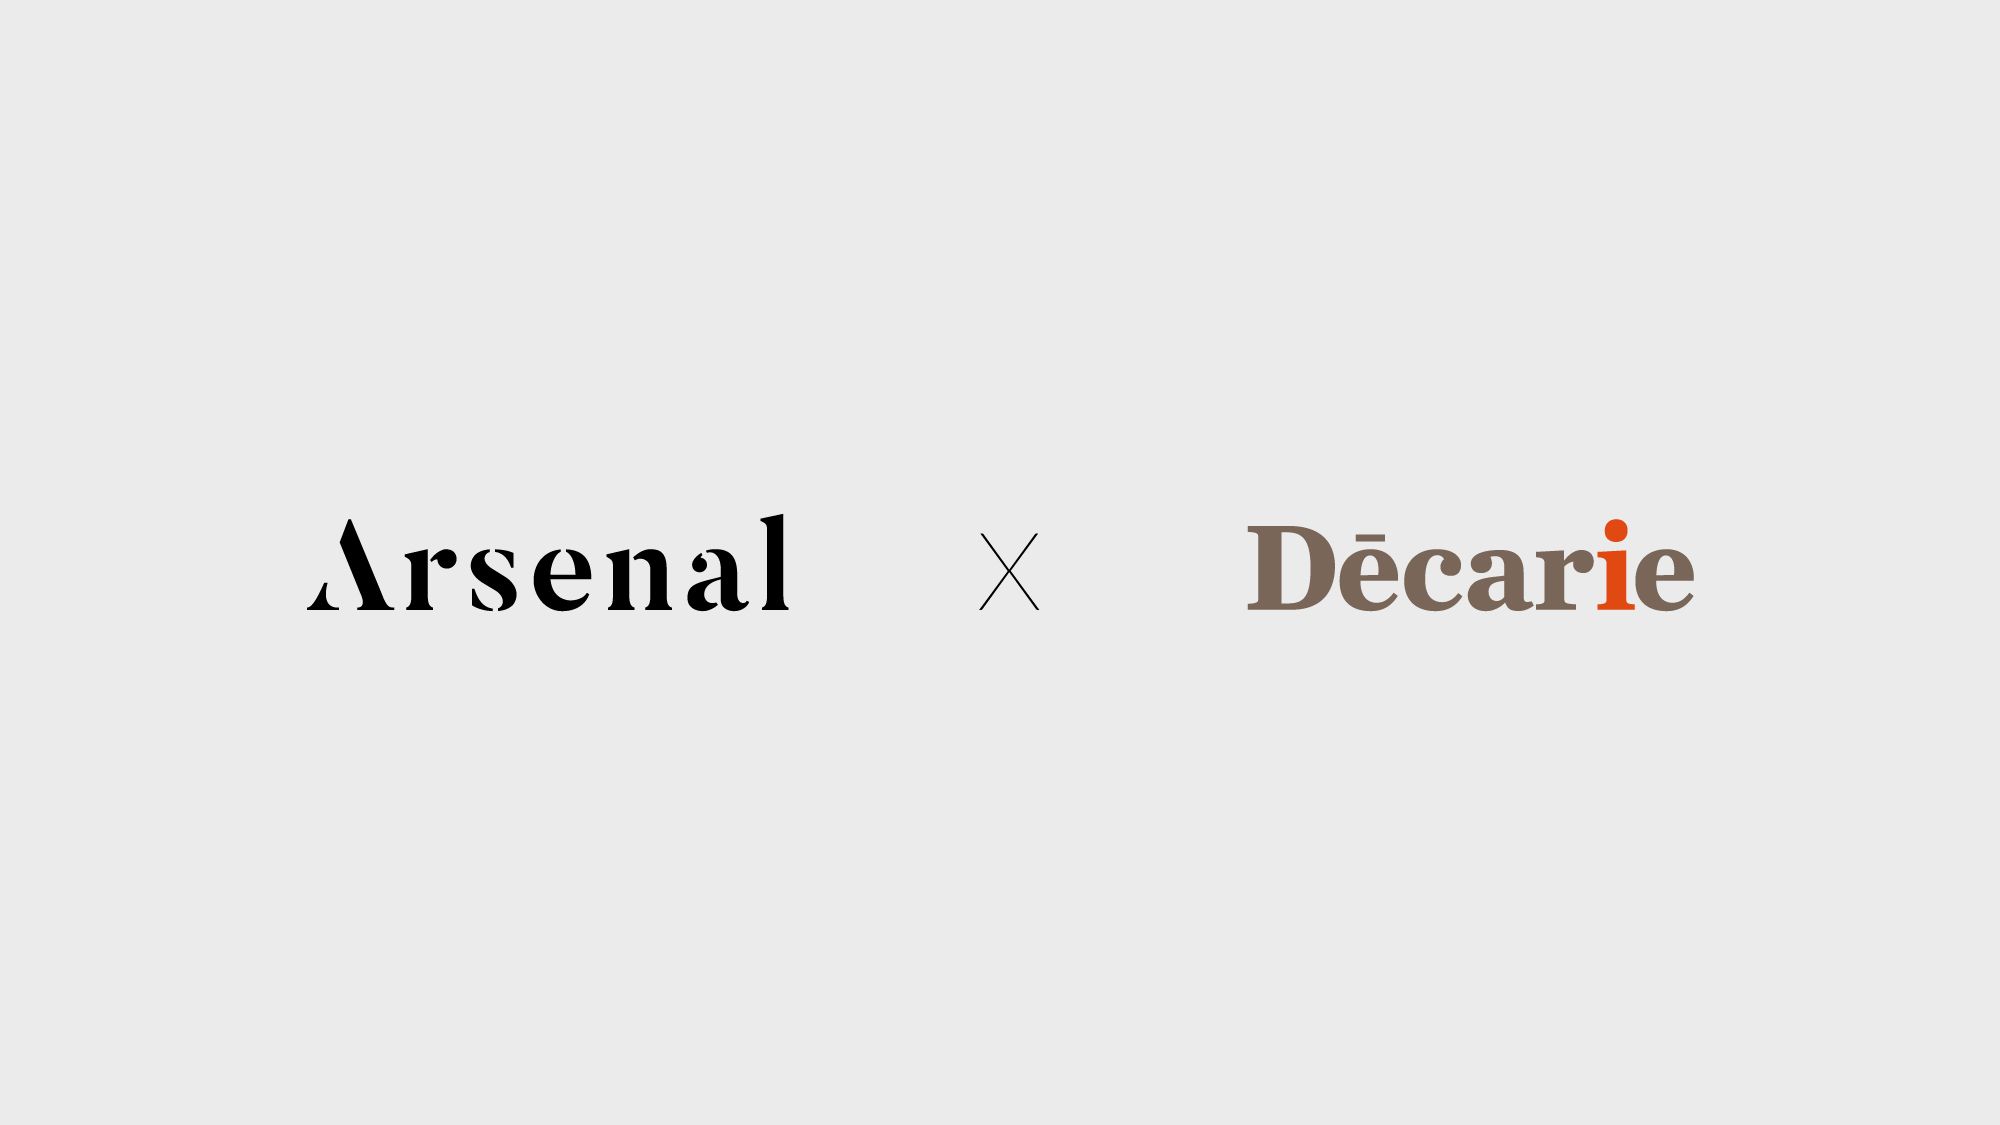 decarie arsenal